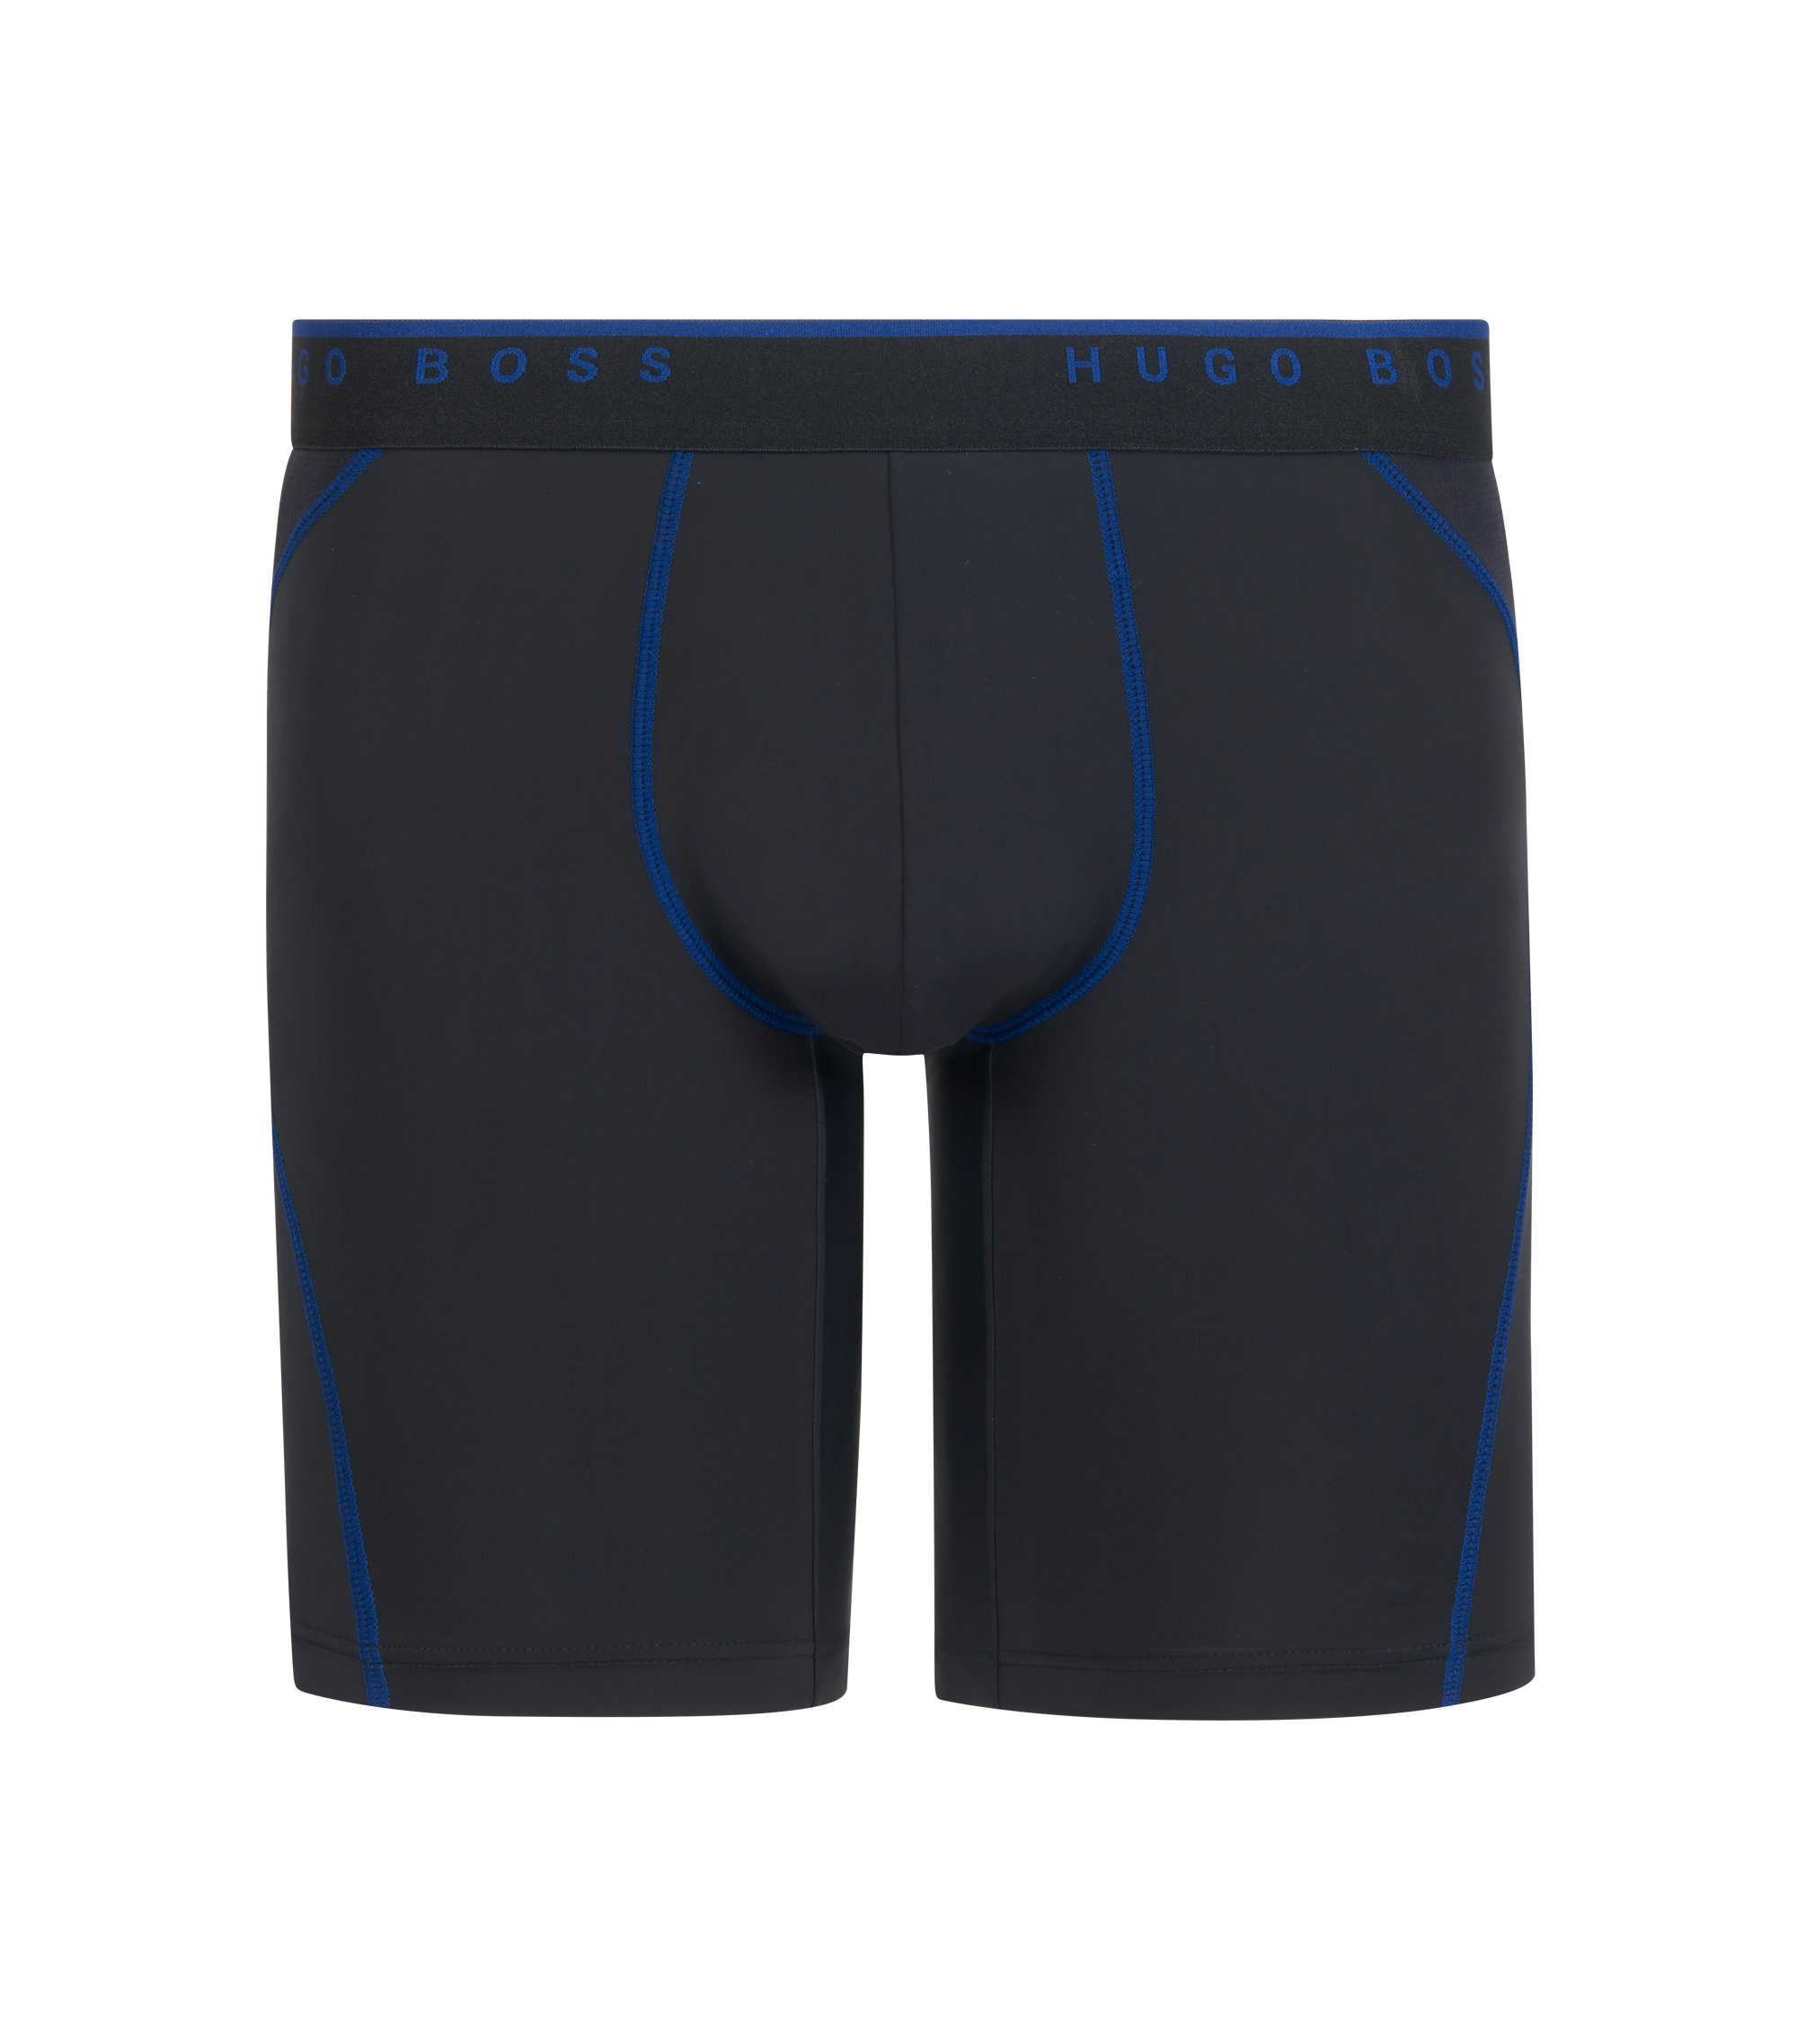 Cycling-inspired boxer briefs with logo waistband, Black